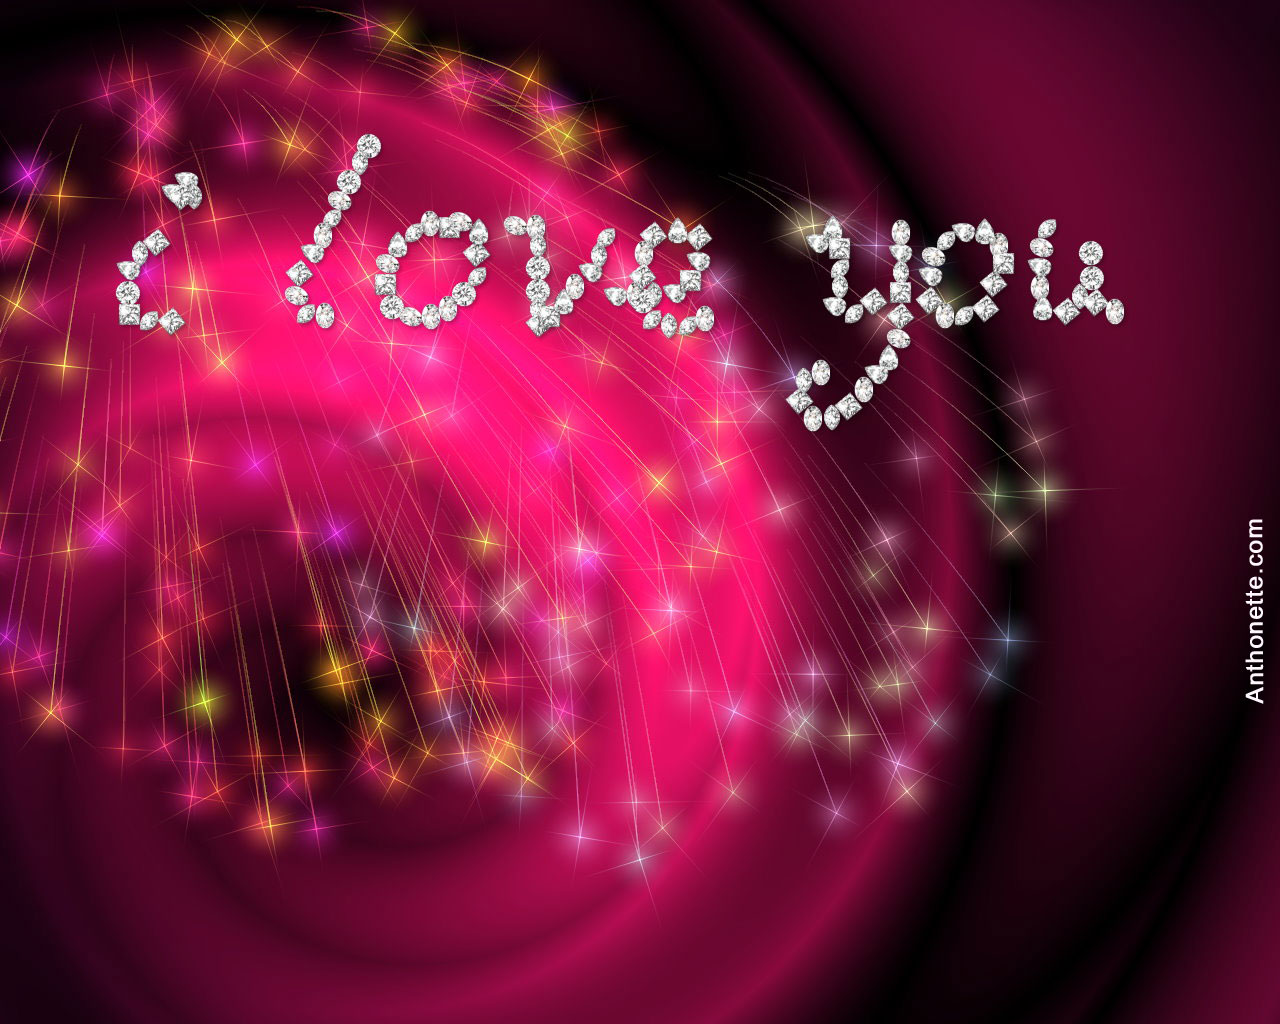 I Love You Free Abstract Wallpaper Desktop Wallpaper